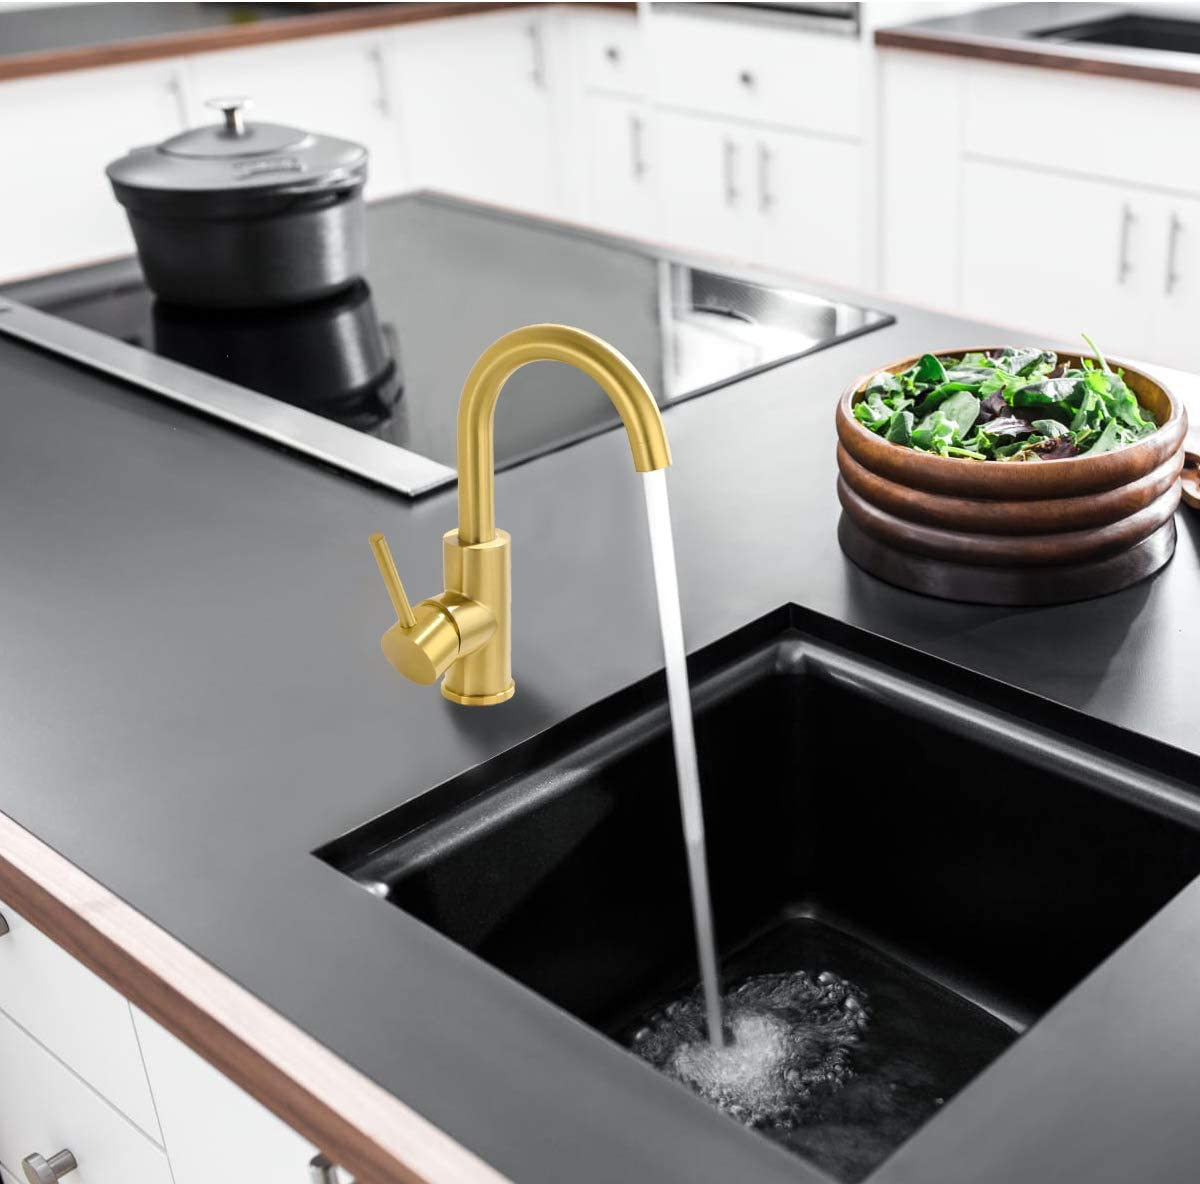 Buy Fonveth Brushed Gold Bar Sink Faucet Stainless Steel Bathroom Sink Faucets Single Handle Small Size Kitchen Sink Faucet Single Hole Kitchen Faucets Brushed Brass Online In Germany B07vsf6r2h